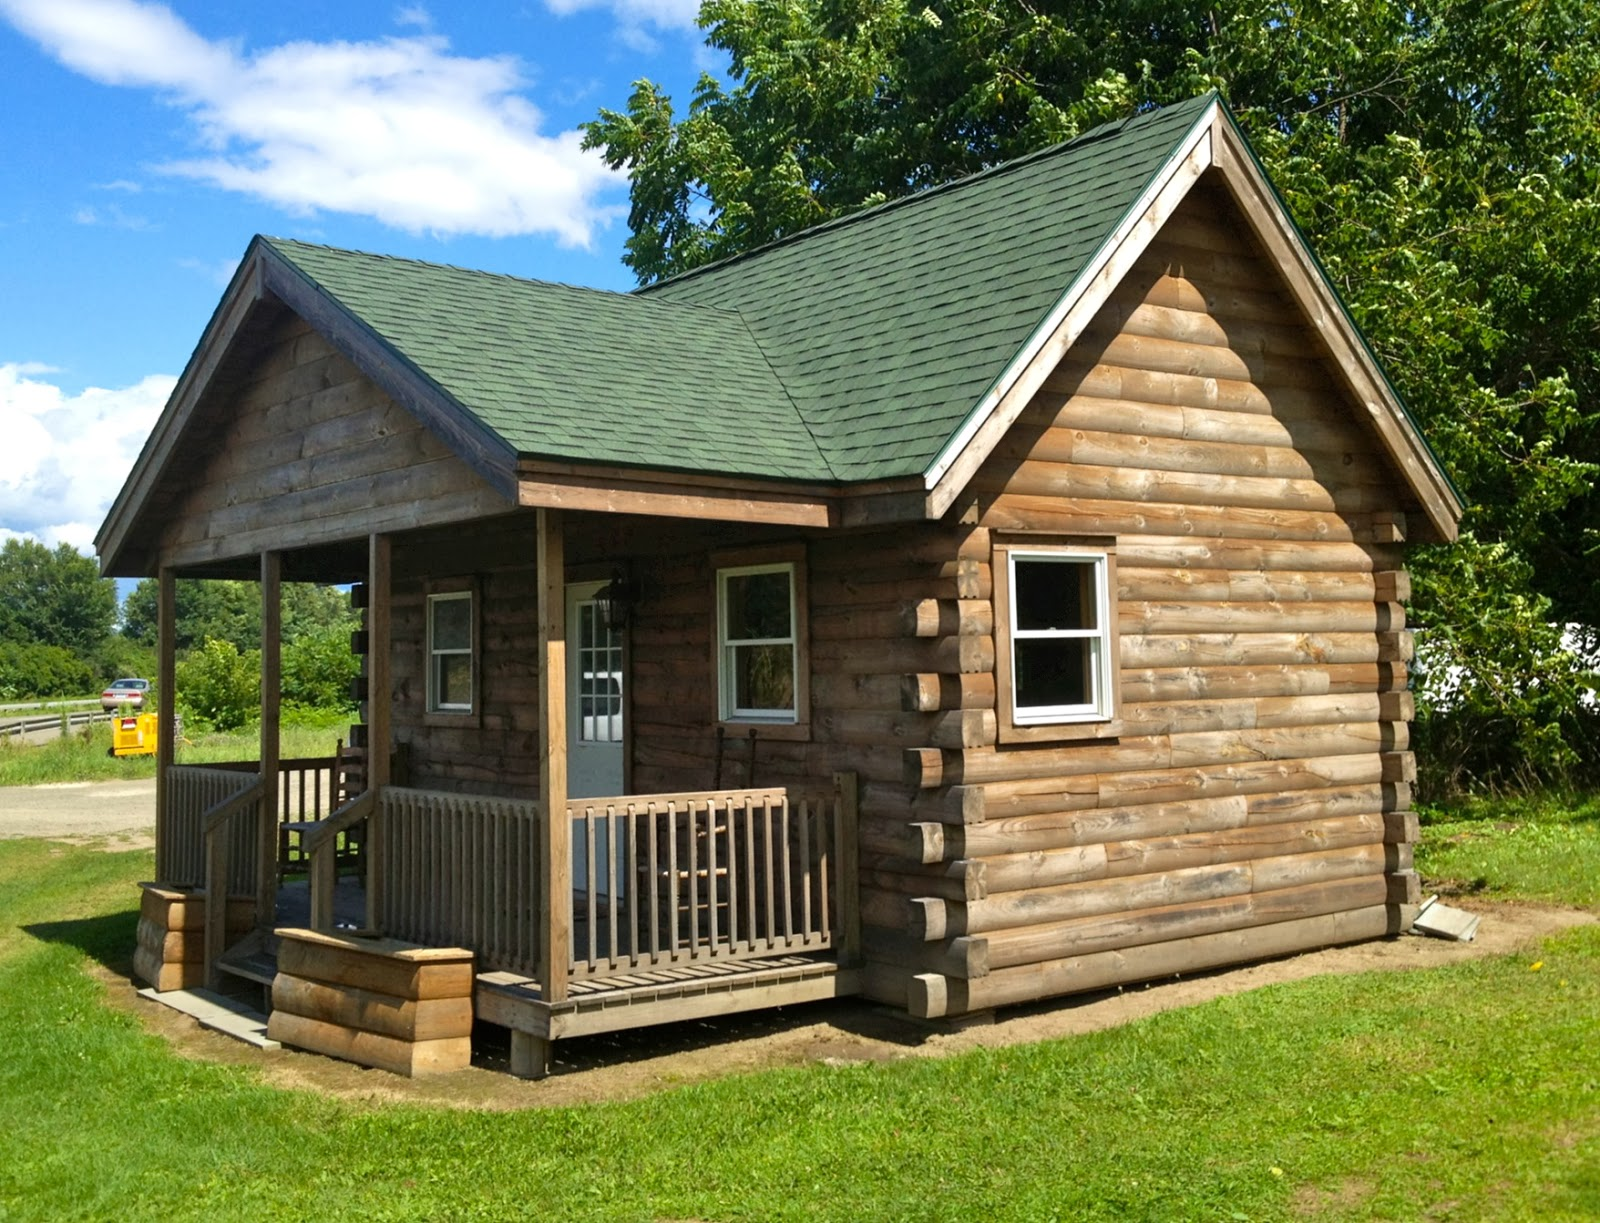 Small scale homes tiny home near binghamton ny for Small house design pictures